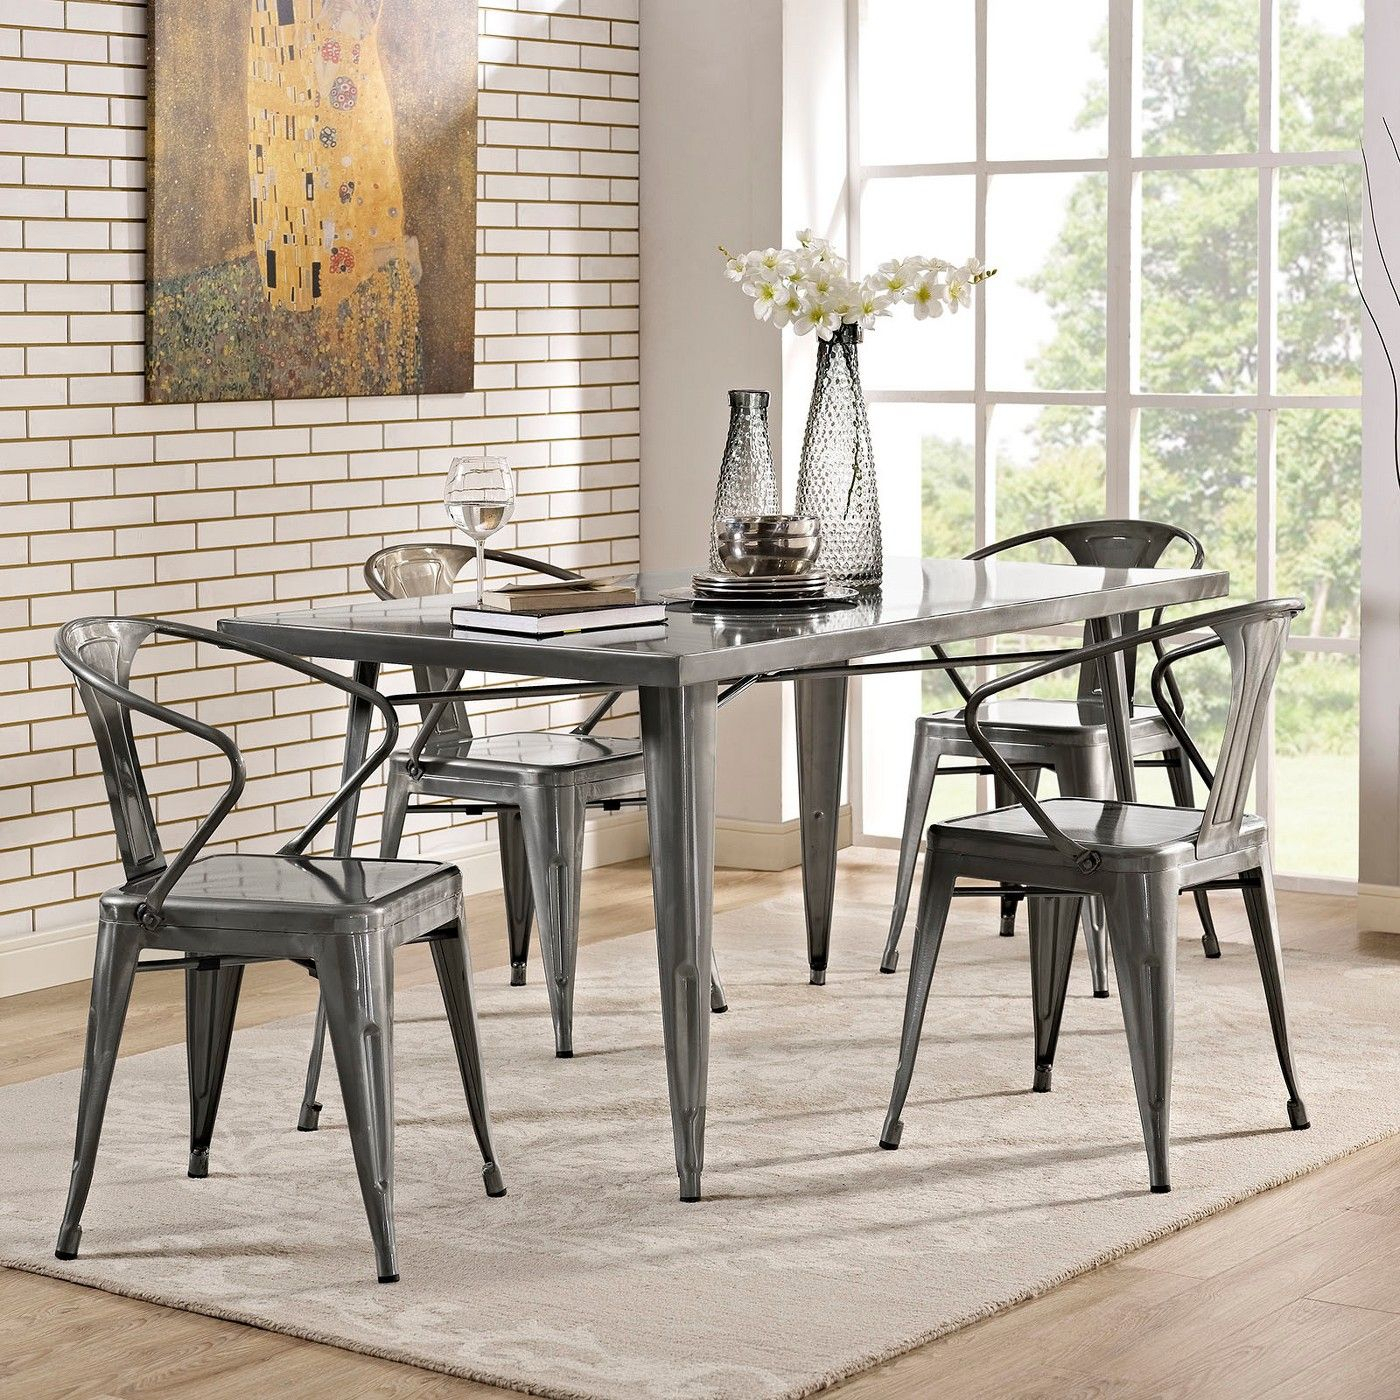 Inspiration about Latest Alacrity Rectangle Metal Dining Table Gunmetal – Modway, Silver Inside Middleport 5 Piece Dining Sets (#16 of 20)